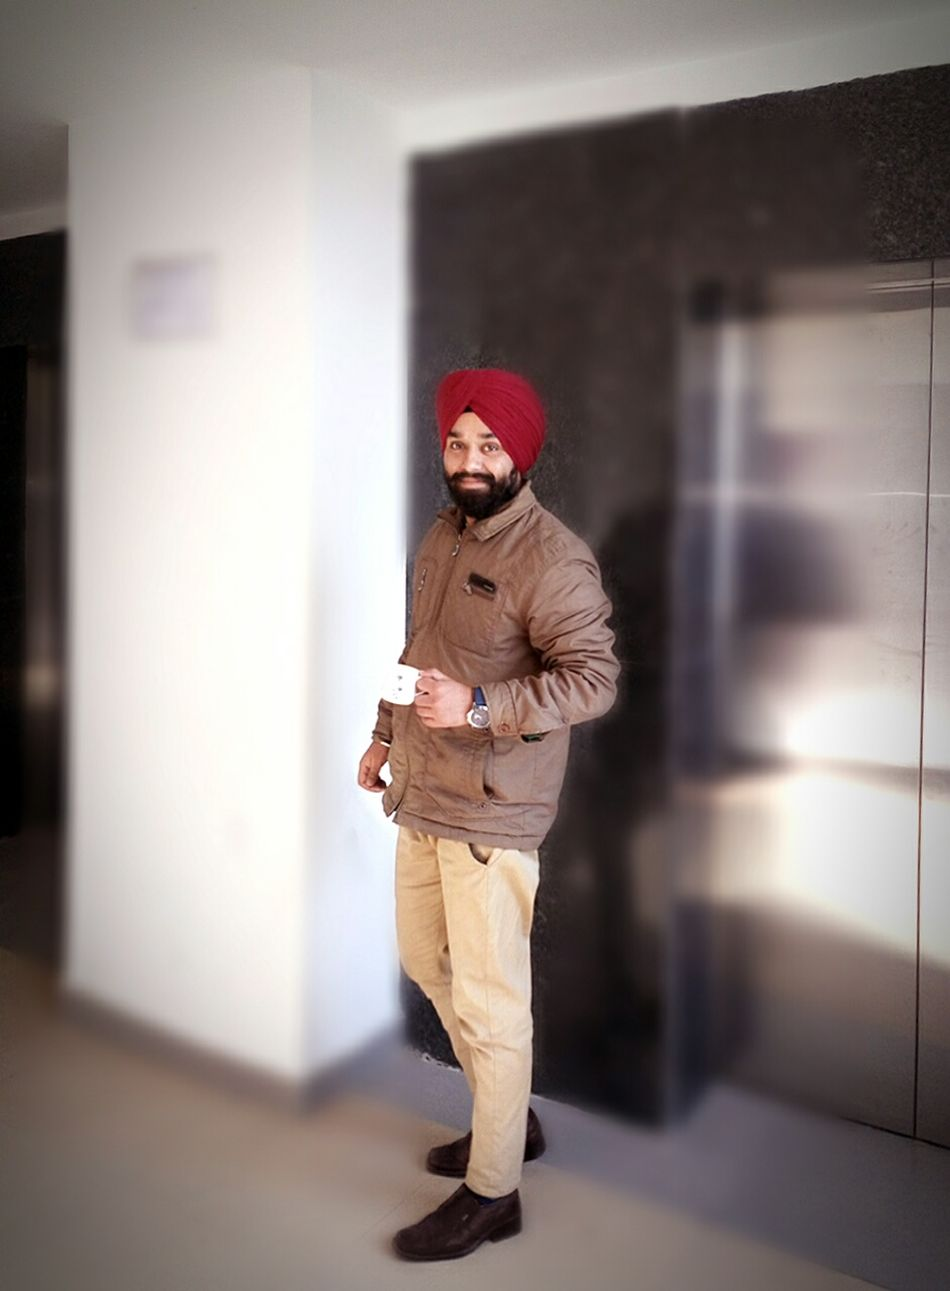 Coffee and friends make the perfect blends. Fashion Streetphotography Menswear Outfit OOTDOutofthewayangles Taking Photos Makesmesmile Singhstyle Happymornings Freshness Shining Like The Sun Spreading Good Vibes Turbanstyle Relaxing Enjoying Life Dapper Boy Hello World Spread Love Not Hate Punjabi Sikhism EyeEmNewHere